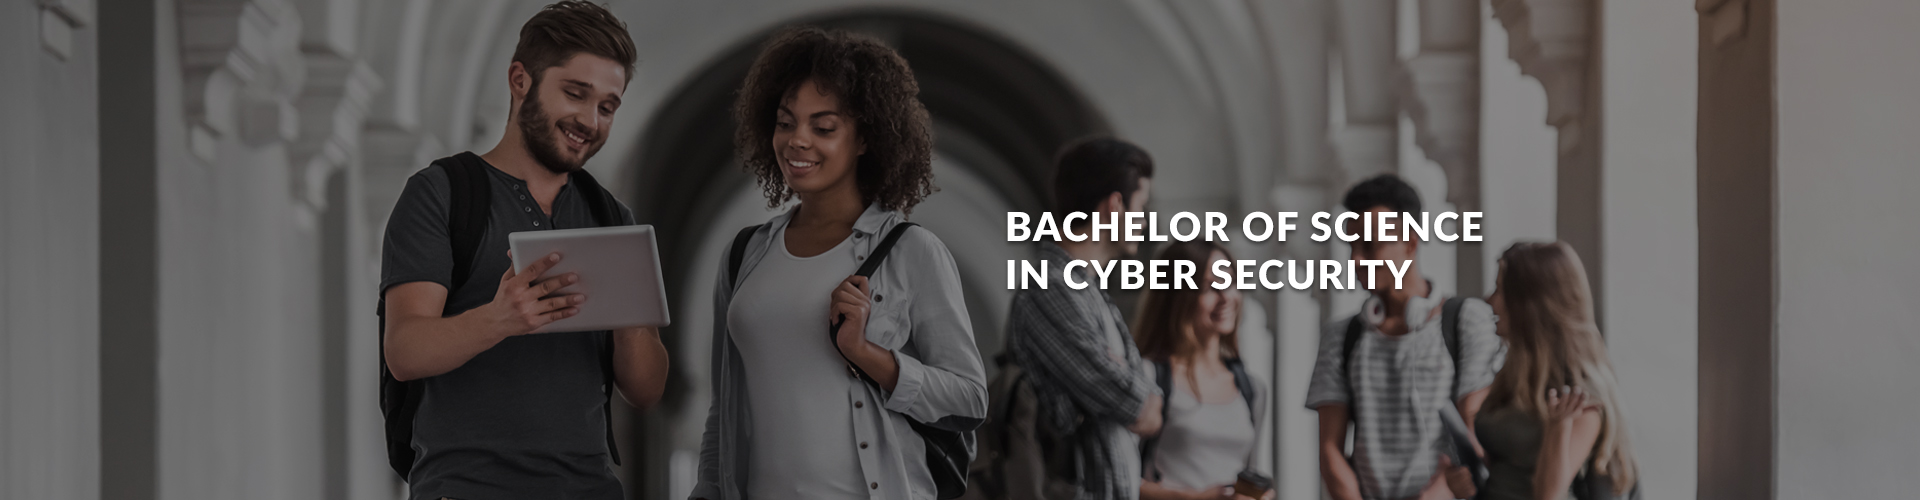 bachelor-of-science-in-cyber-security